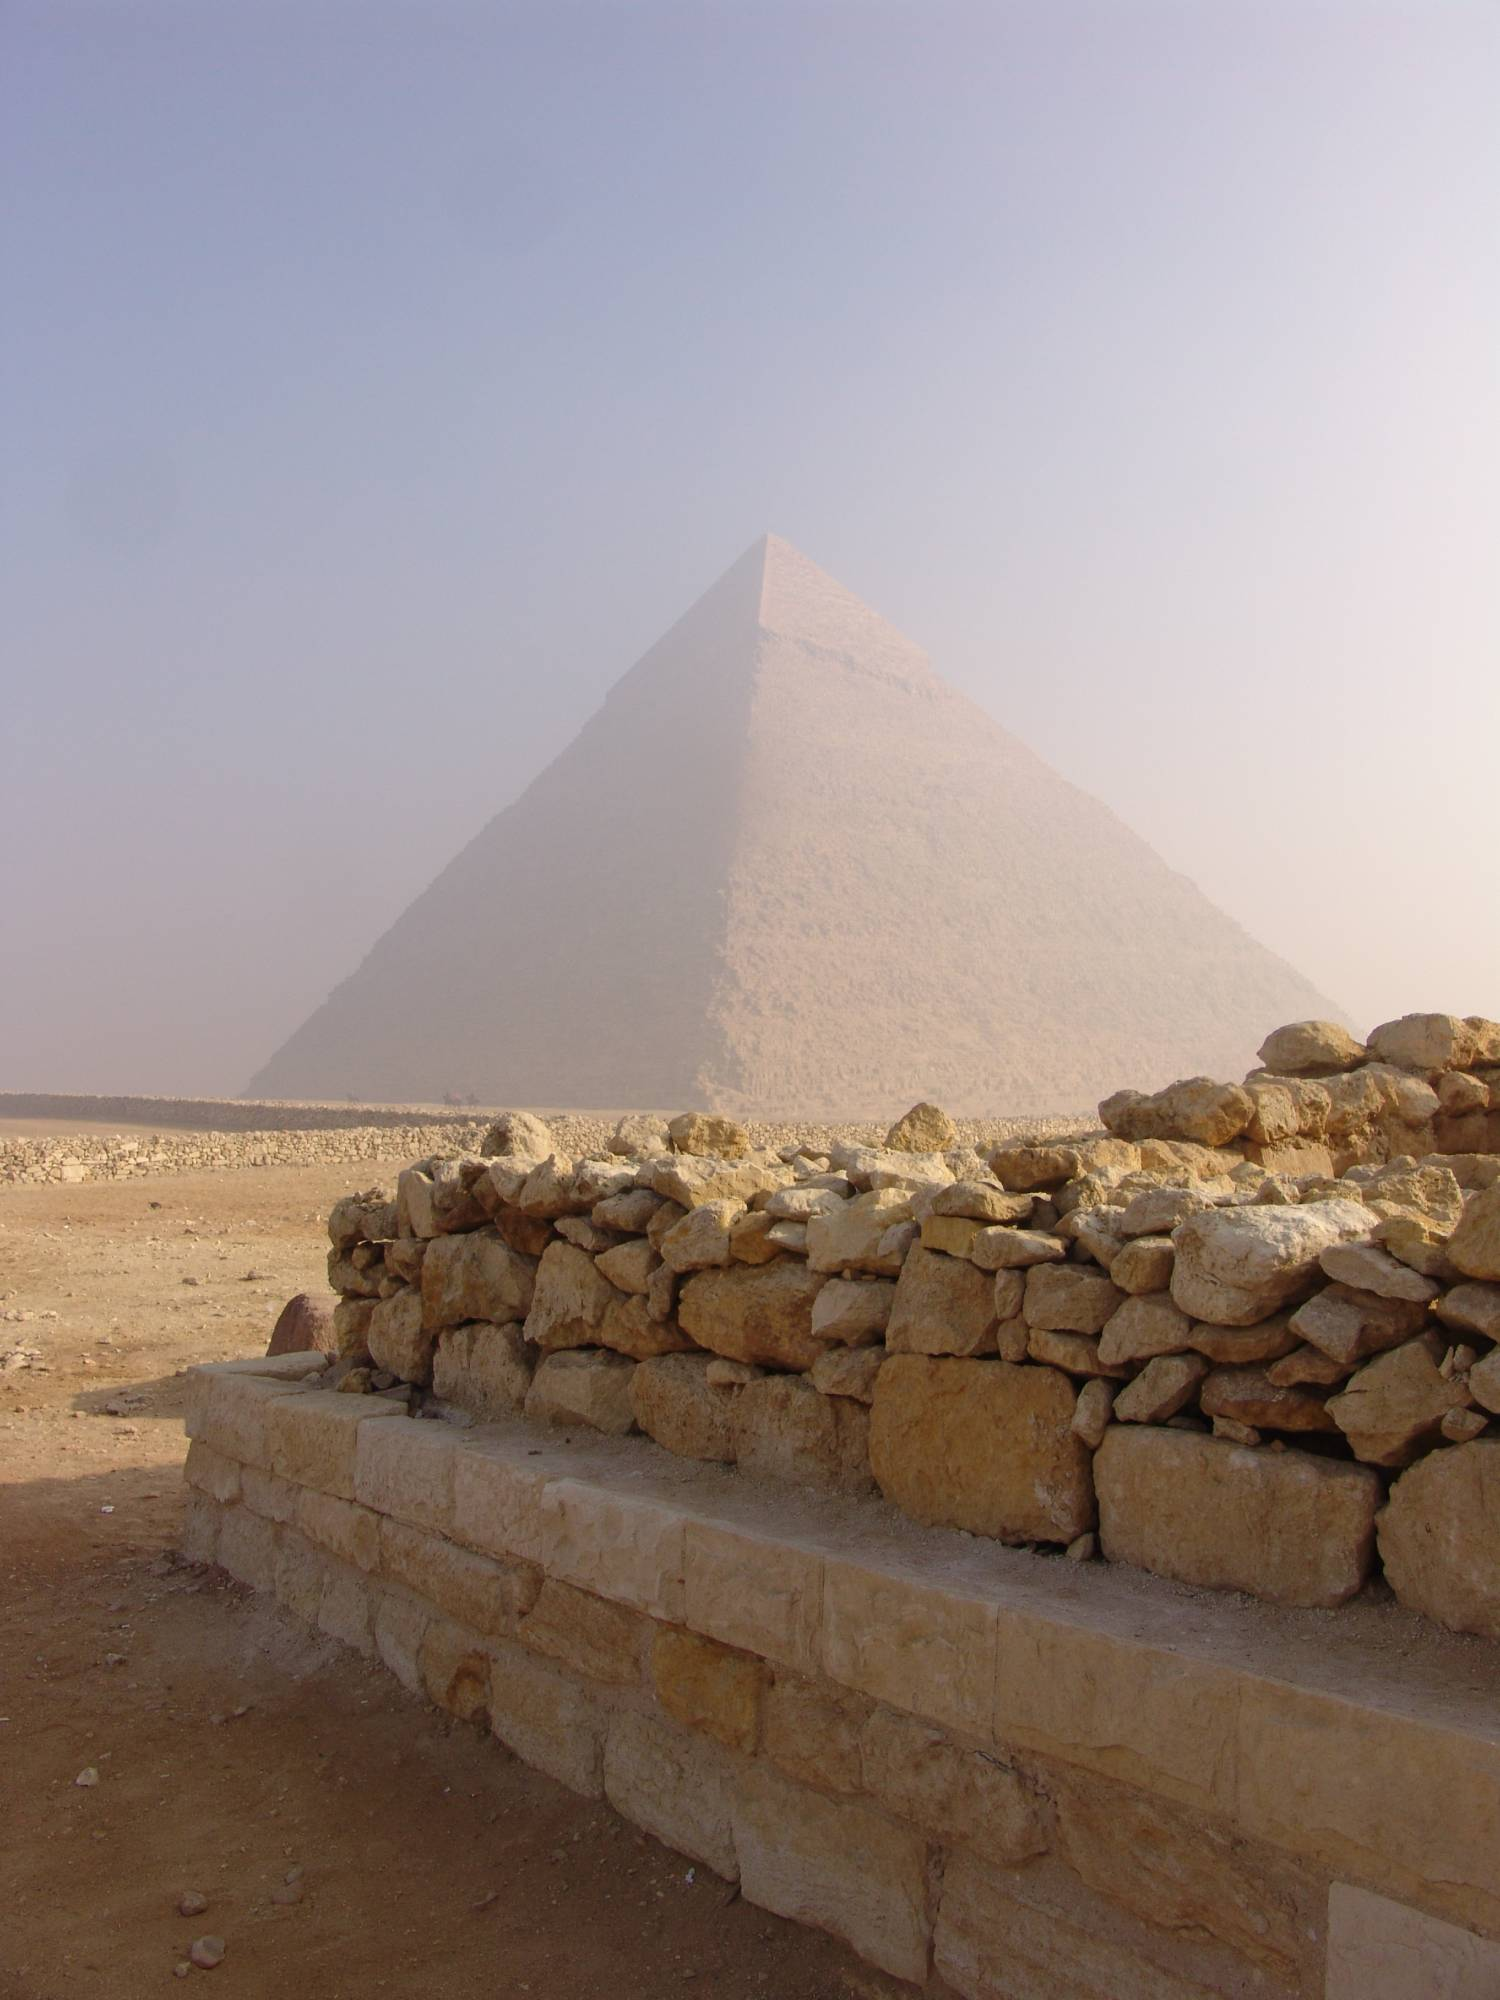 Egypt - Giza Pyramids photo